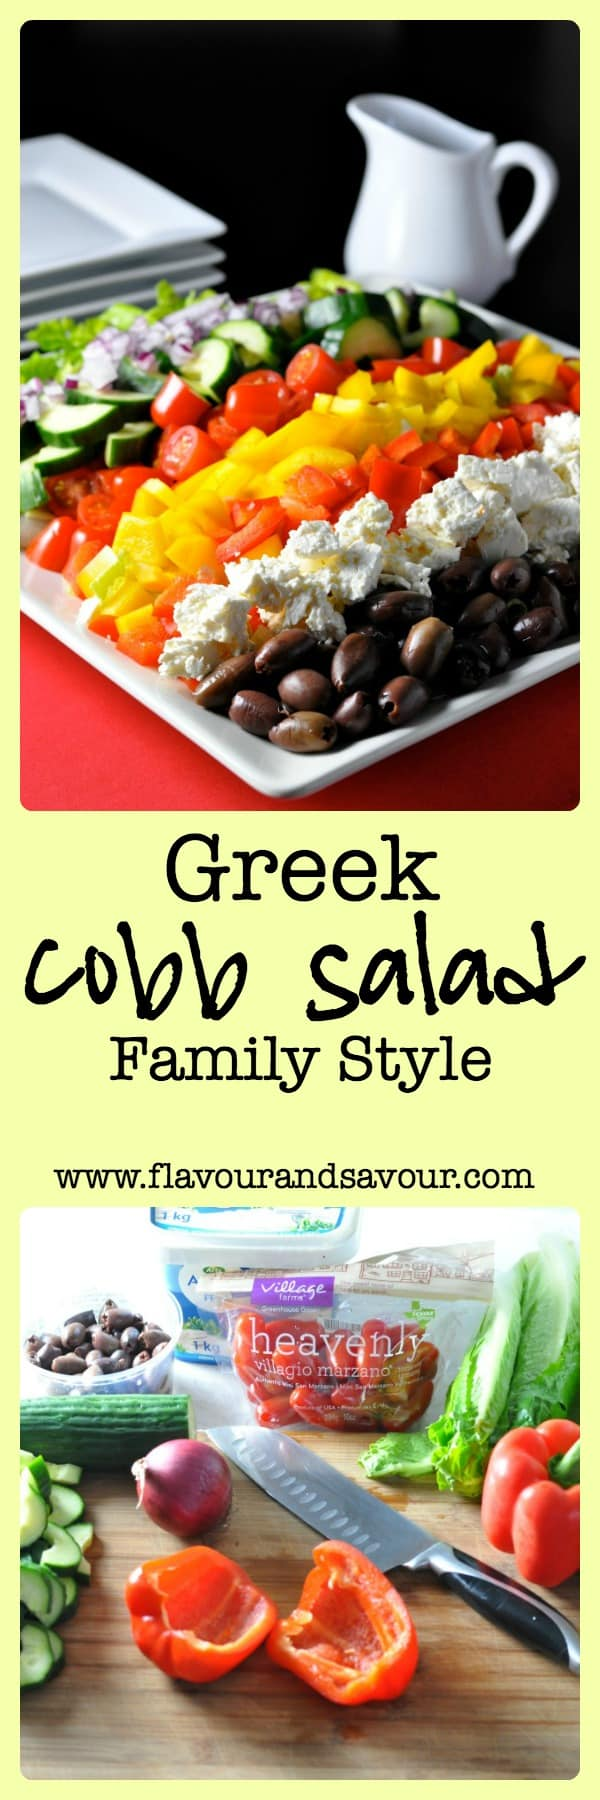 Greek Cobb Salad--Family Style. Provide choices and let everyone make their own.  www.flavourandsavour.com